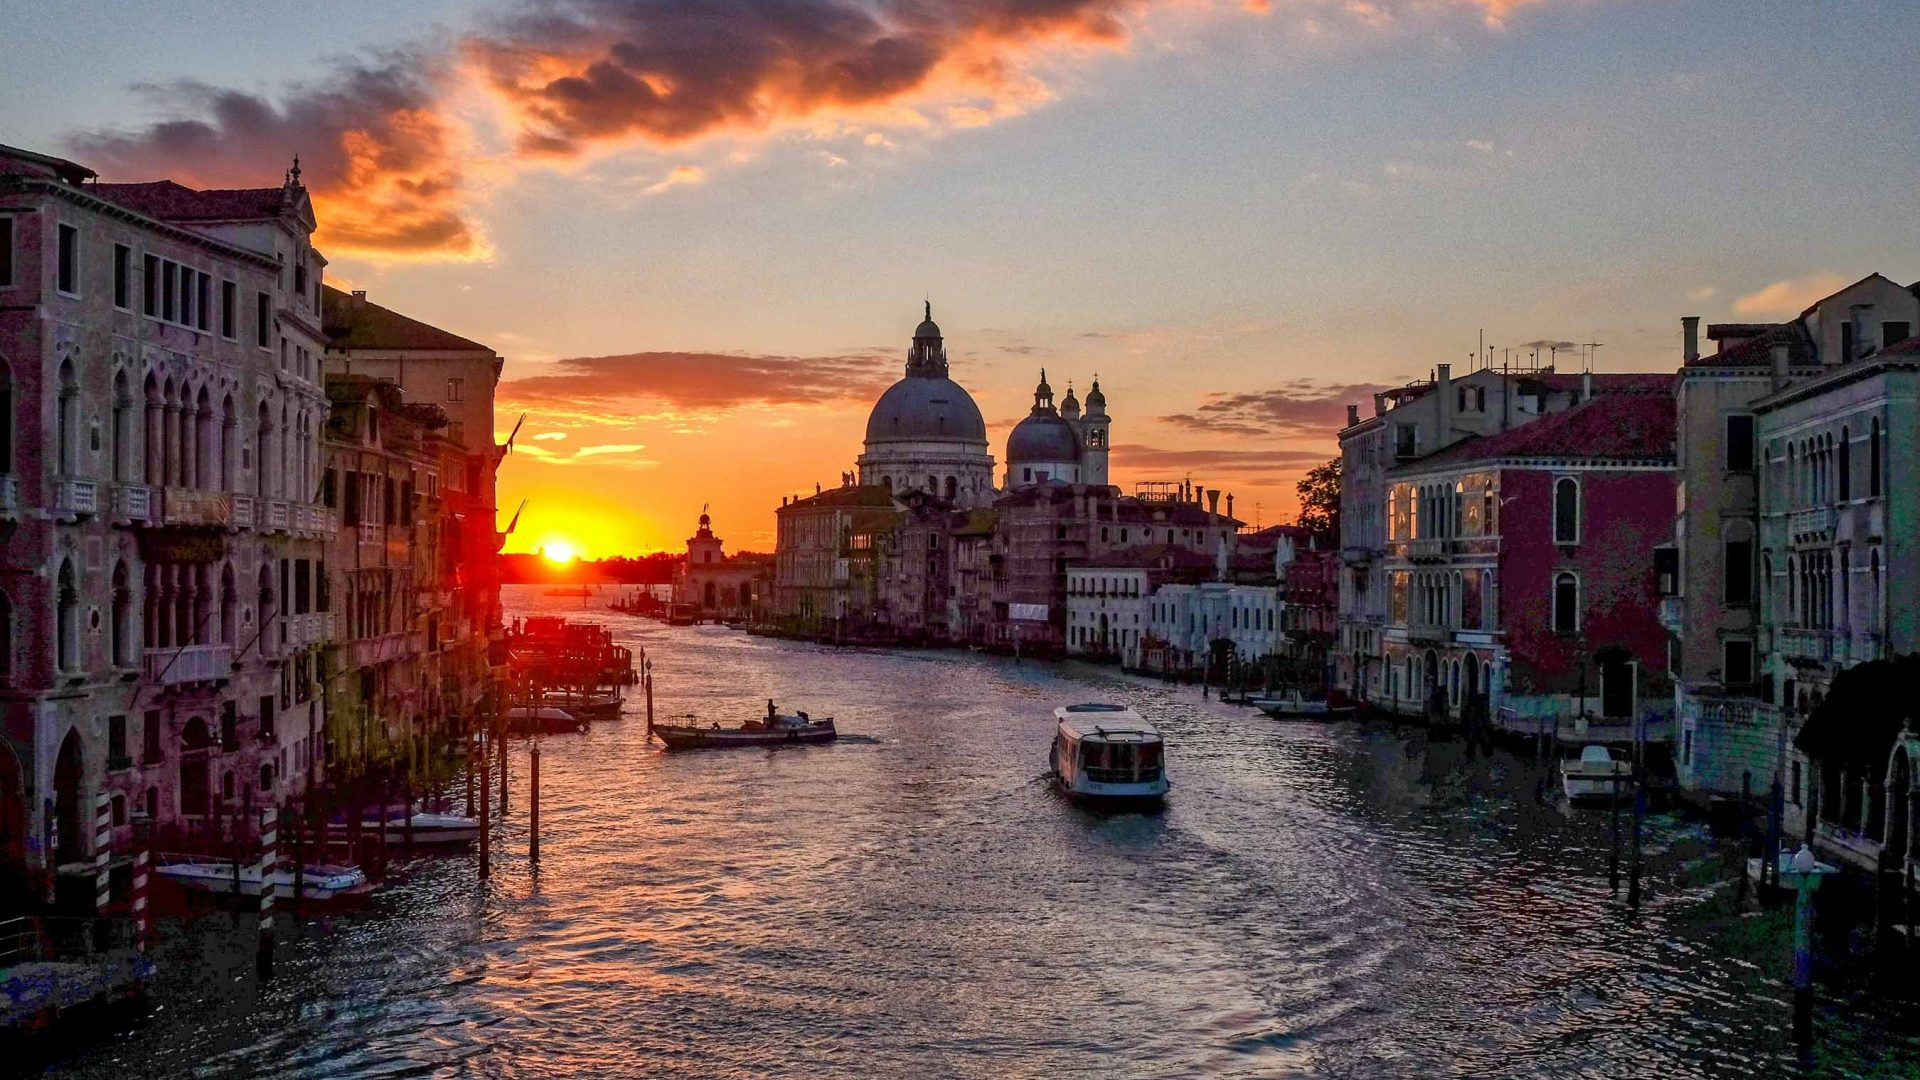 The sun sets over the canal and buildings of Venice.